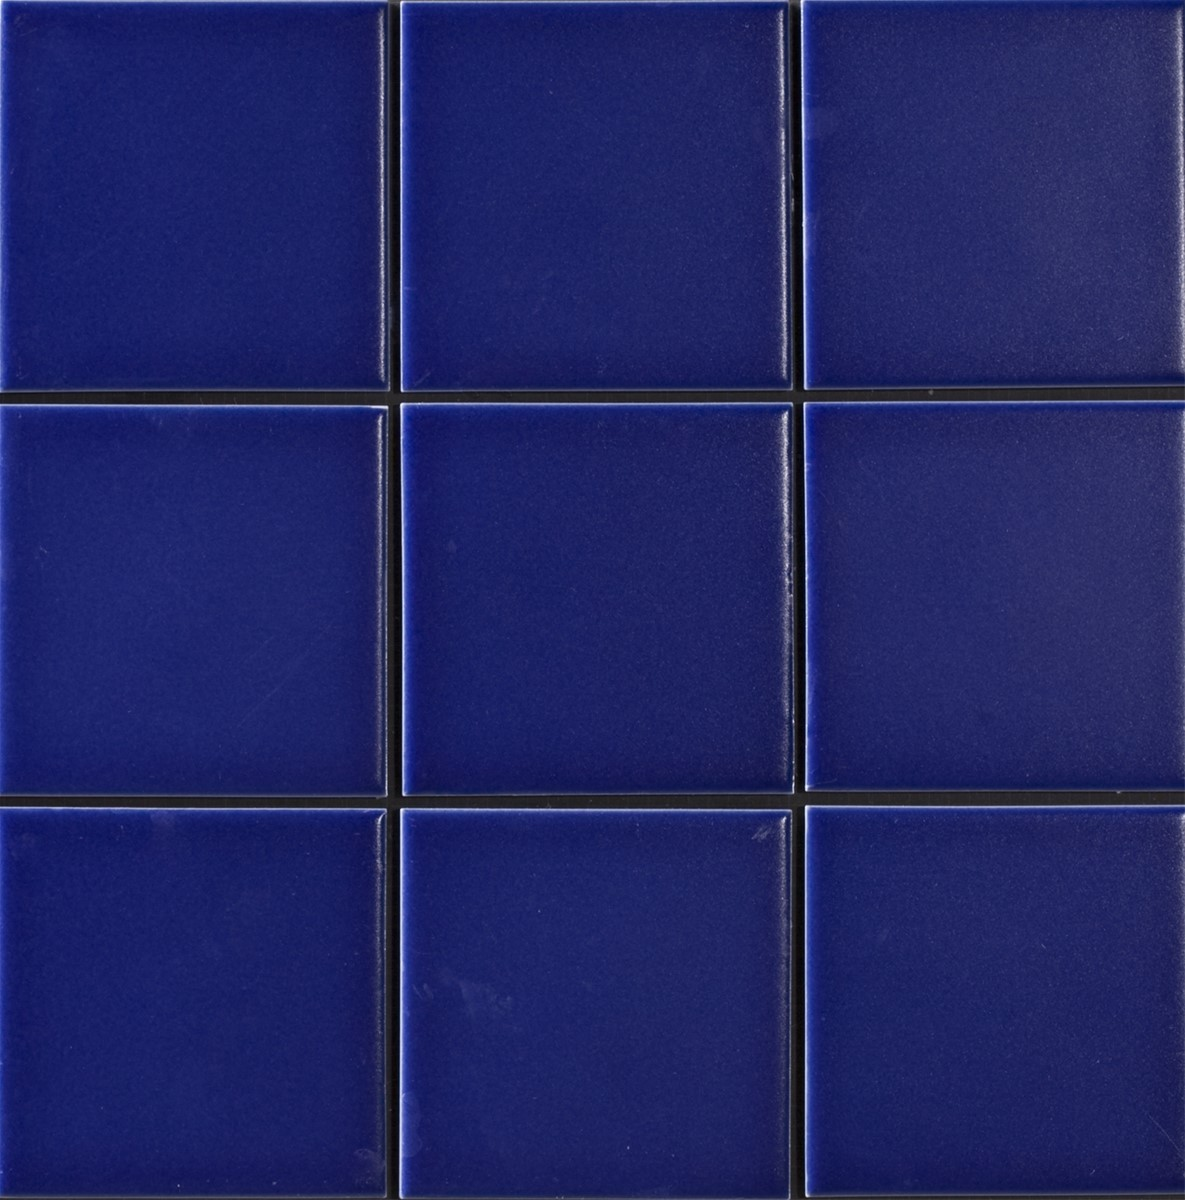 Swimming Pool Porcelain Tile 4x4 Quot G9701 Purchasing